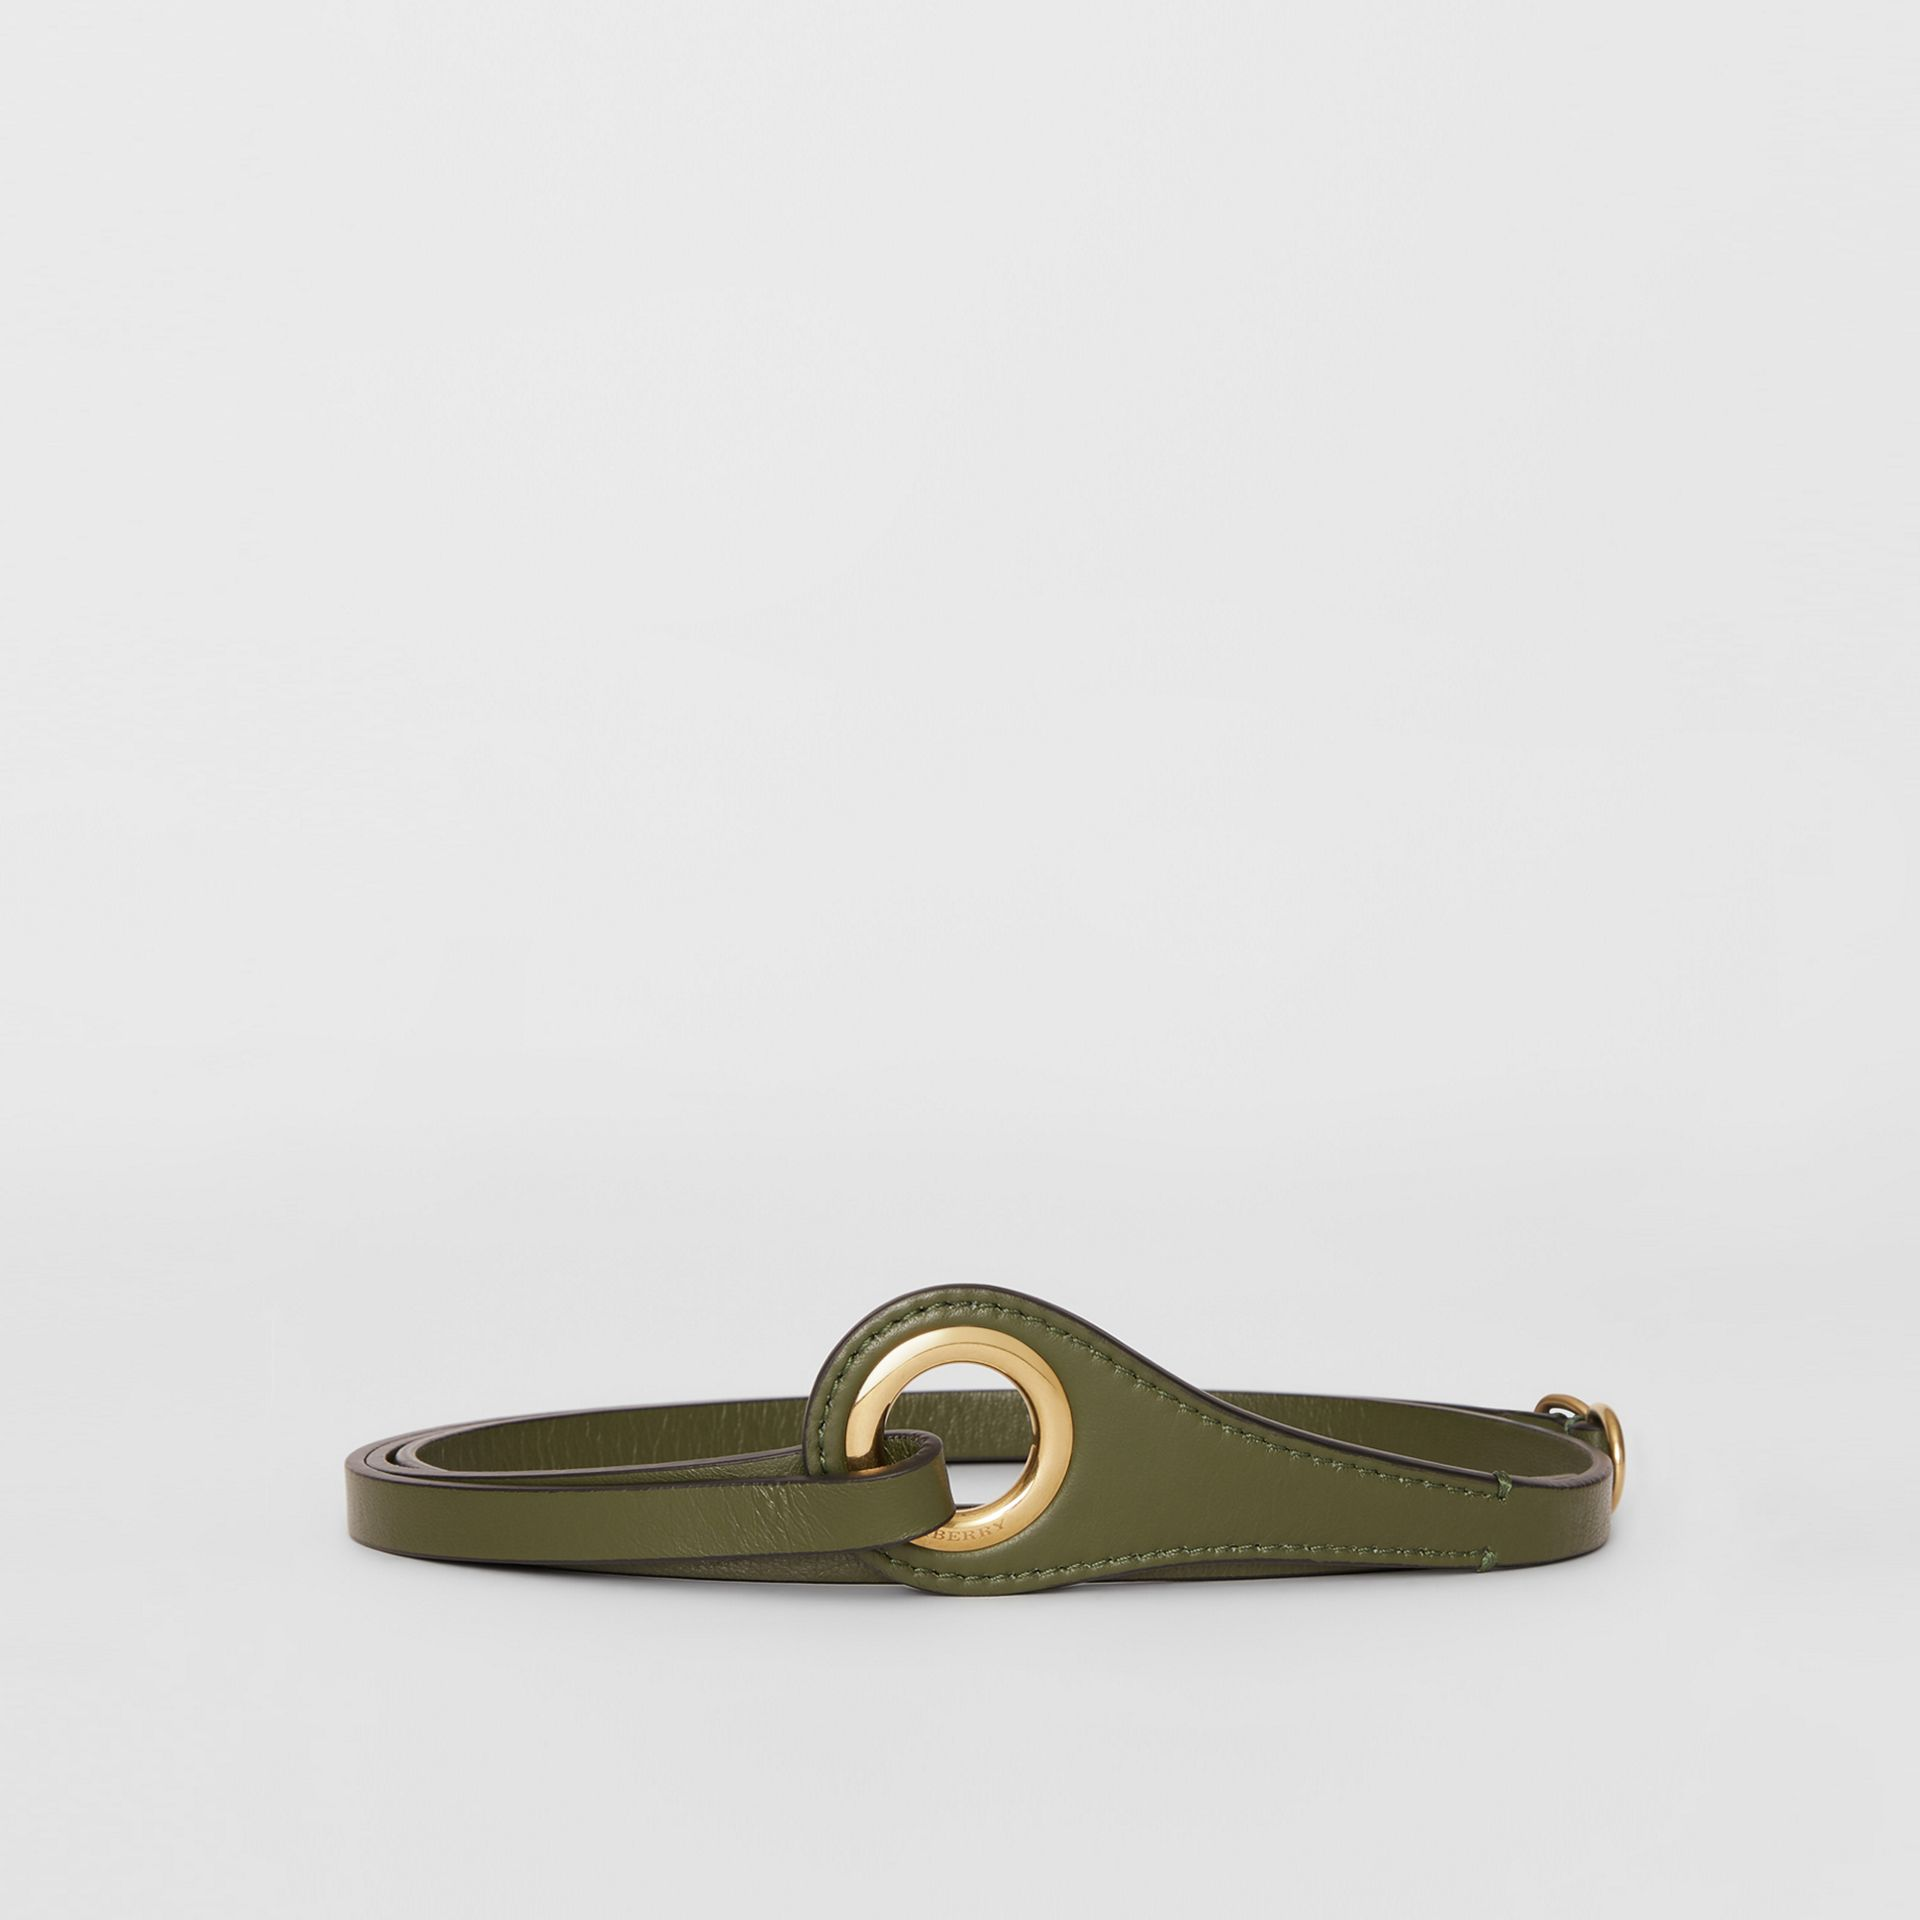 Grommet Detail Lambskin Belt in Dark Olive - Women | Burberry - gallery image 3